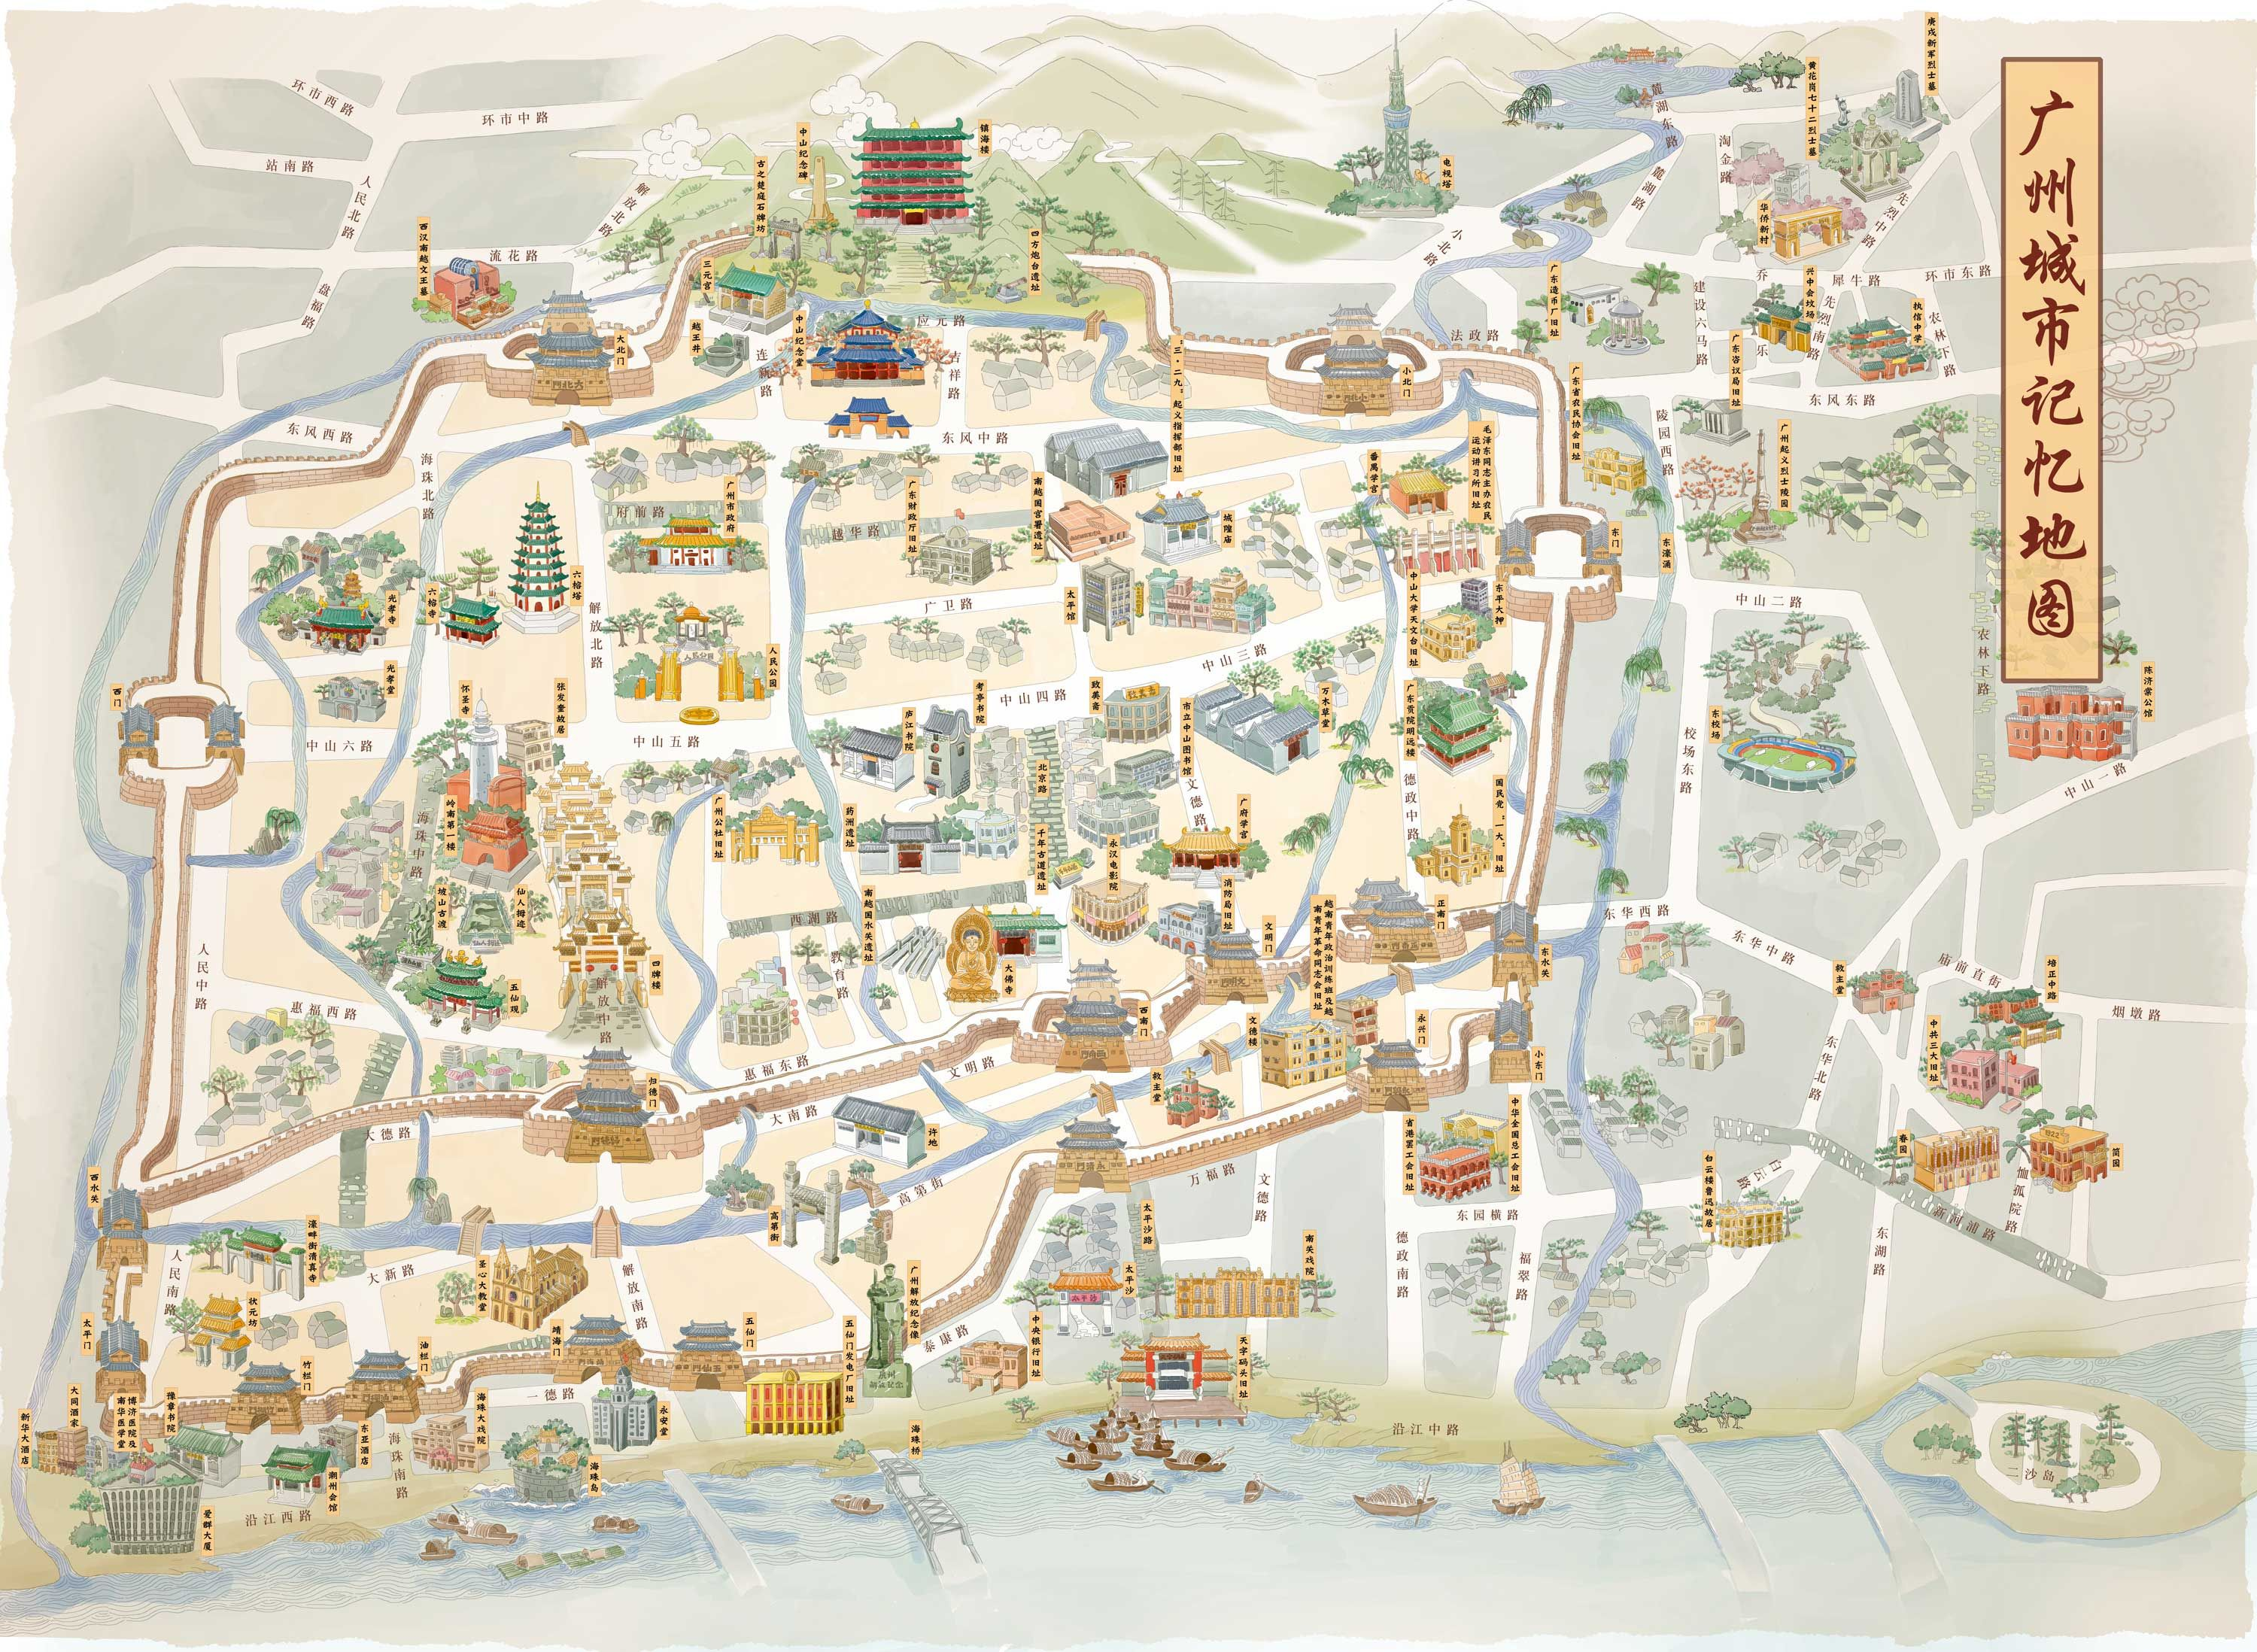 my work of map of Old Canton City China with walls 18 Gates and 6